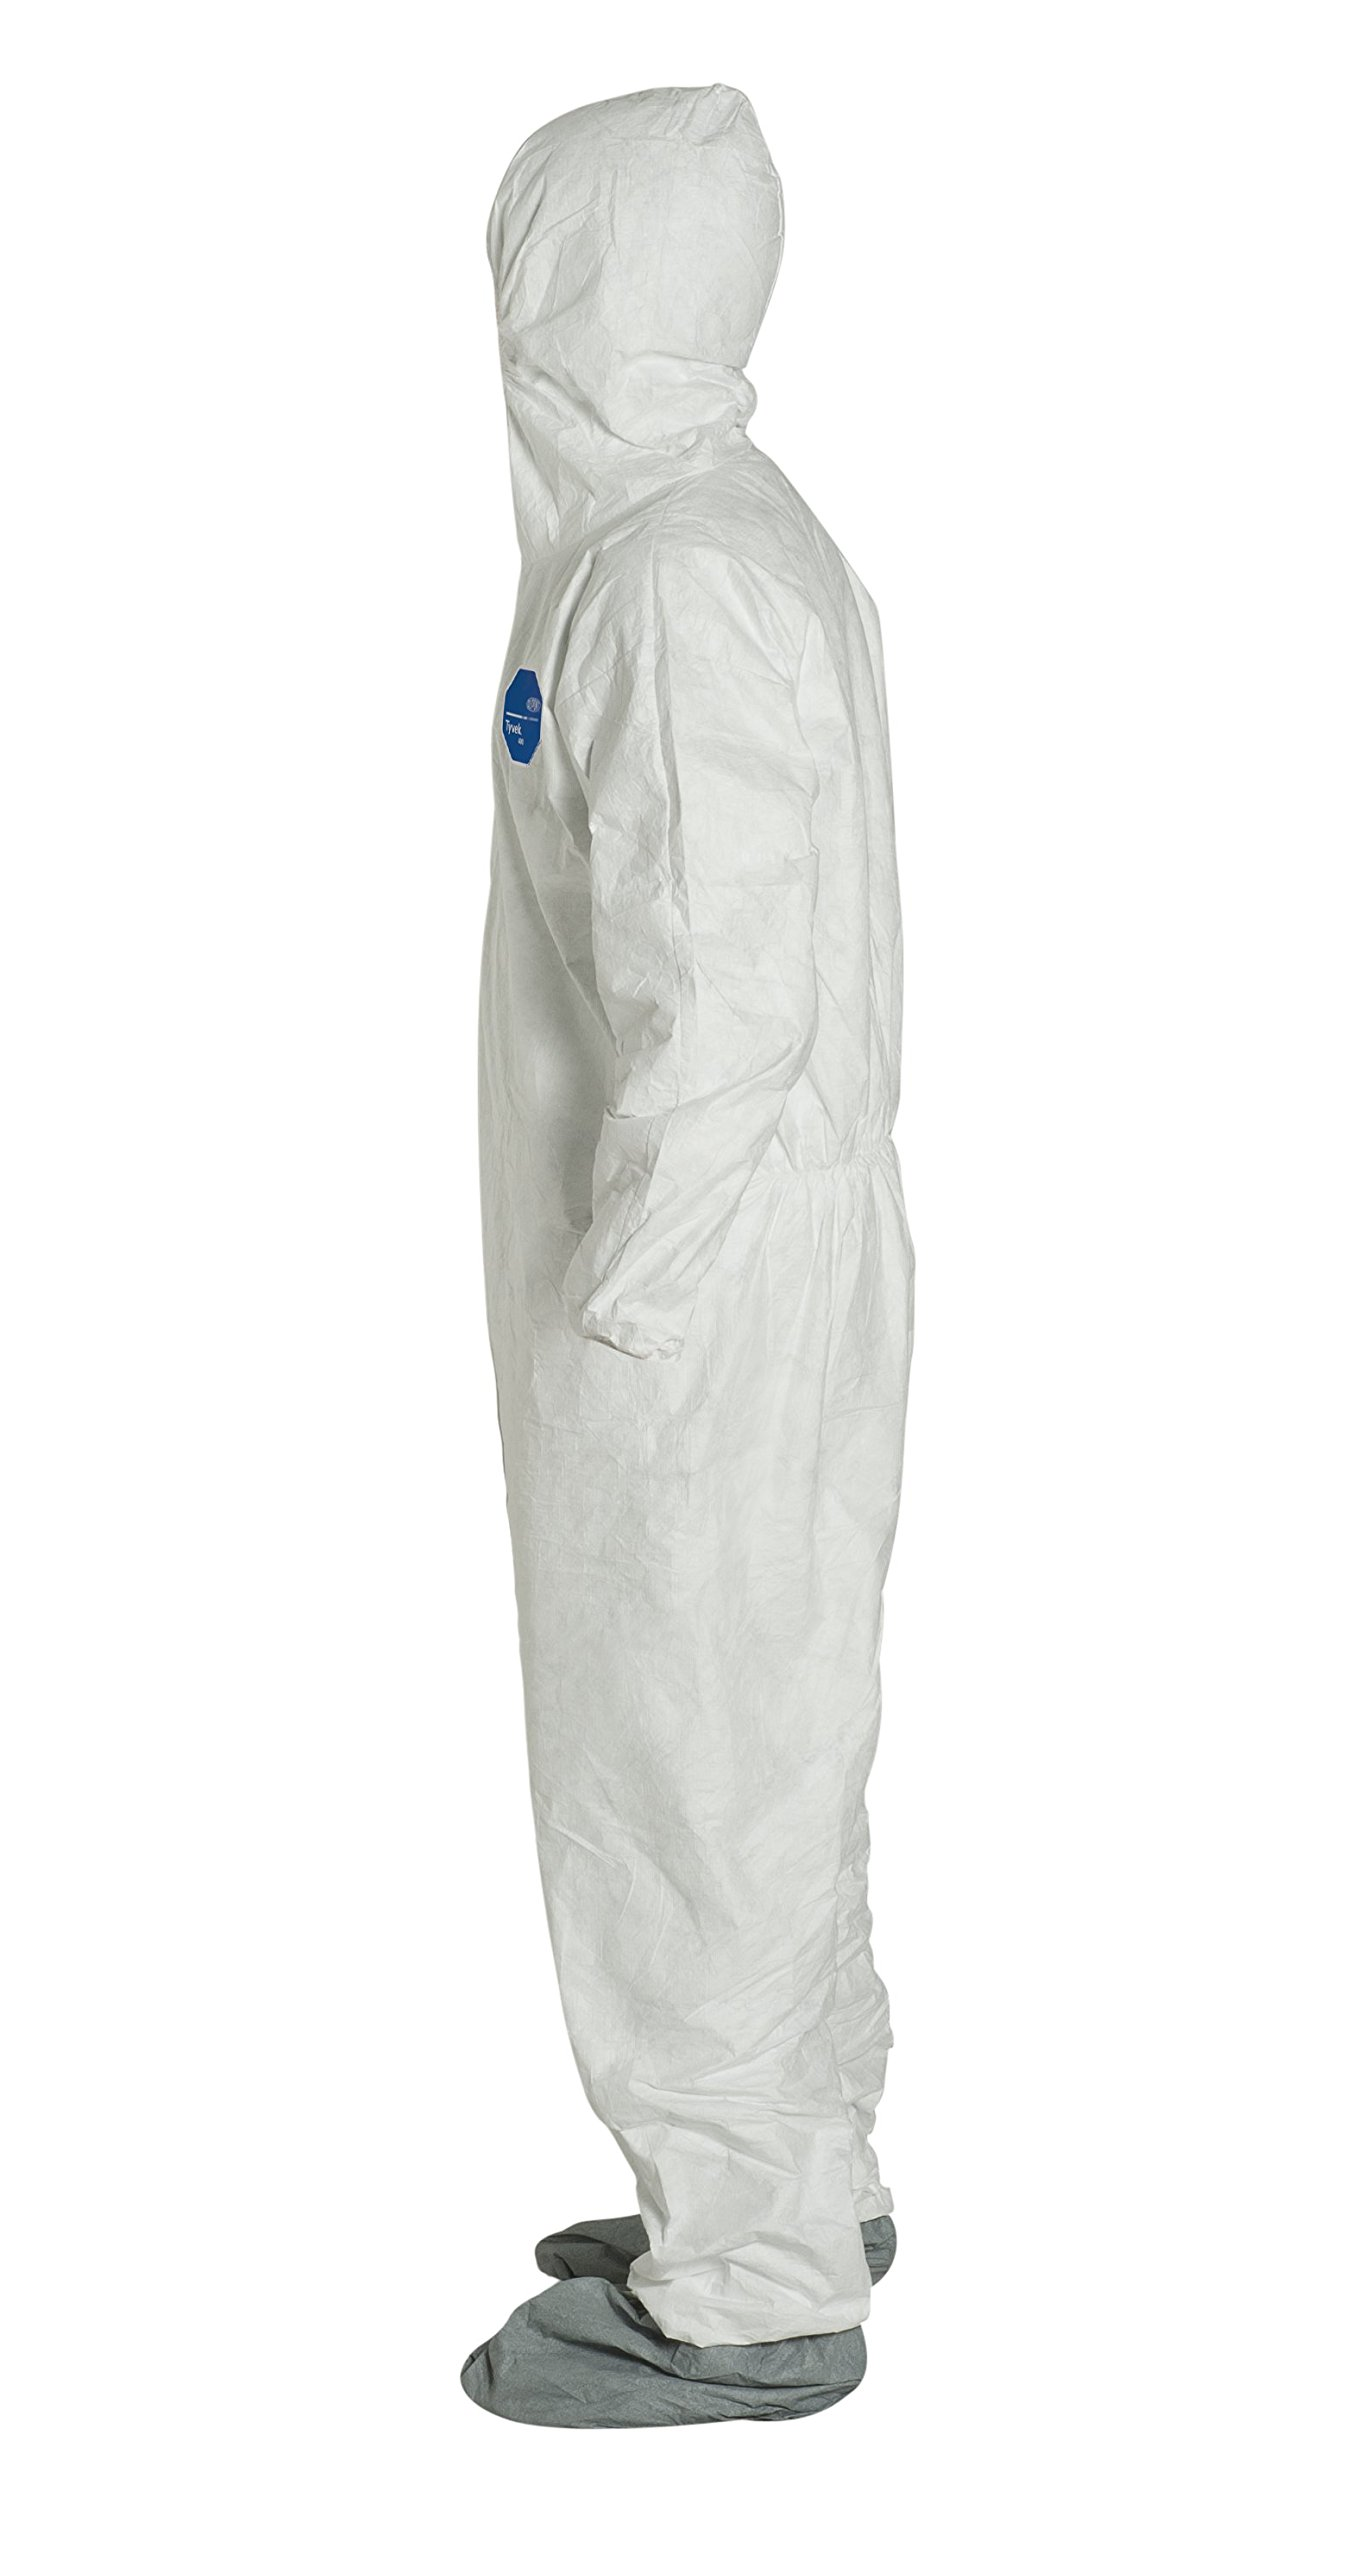 DuPont Tyvek 400 TY122S Disposable Protective Coverall with Elastic Cuffs, Attached Hood and Boots, White, 7X-Large (Pack of 25) by DuPont (Image #3)